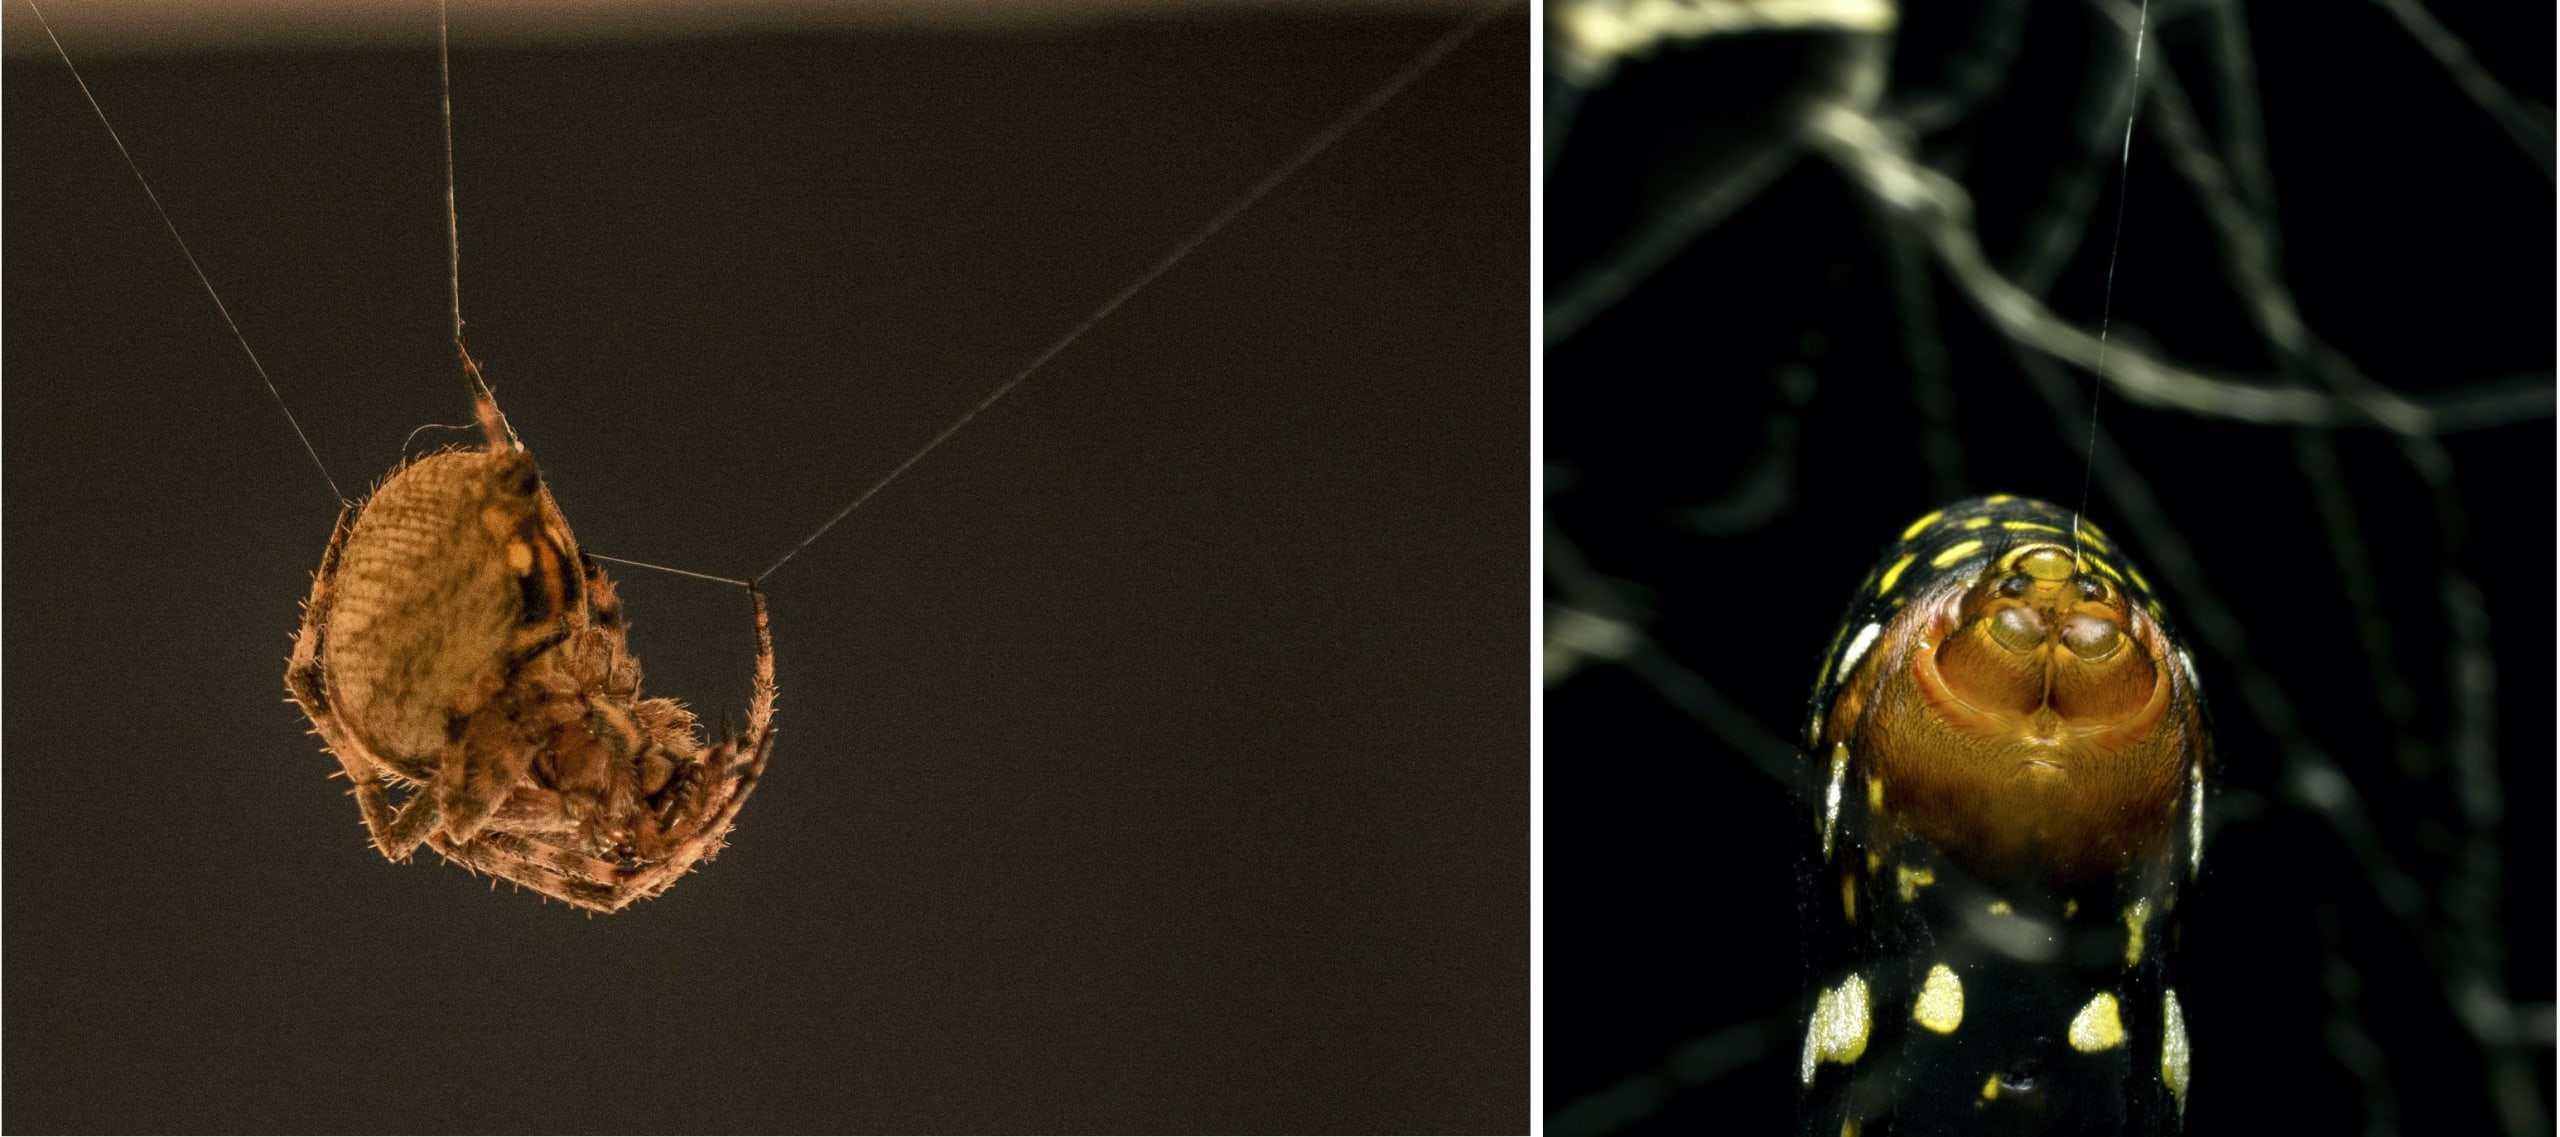 (Left) A garden orb-weaver is busy at work setting up the basic framework for her web in a kitchen. Many orb-weavers consume their webs and rebuild them each night. (Right) The golden orb-weaver has five silk-producing glands. Photos: Samuel John